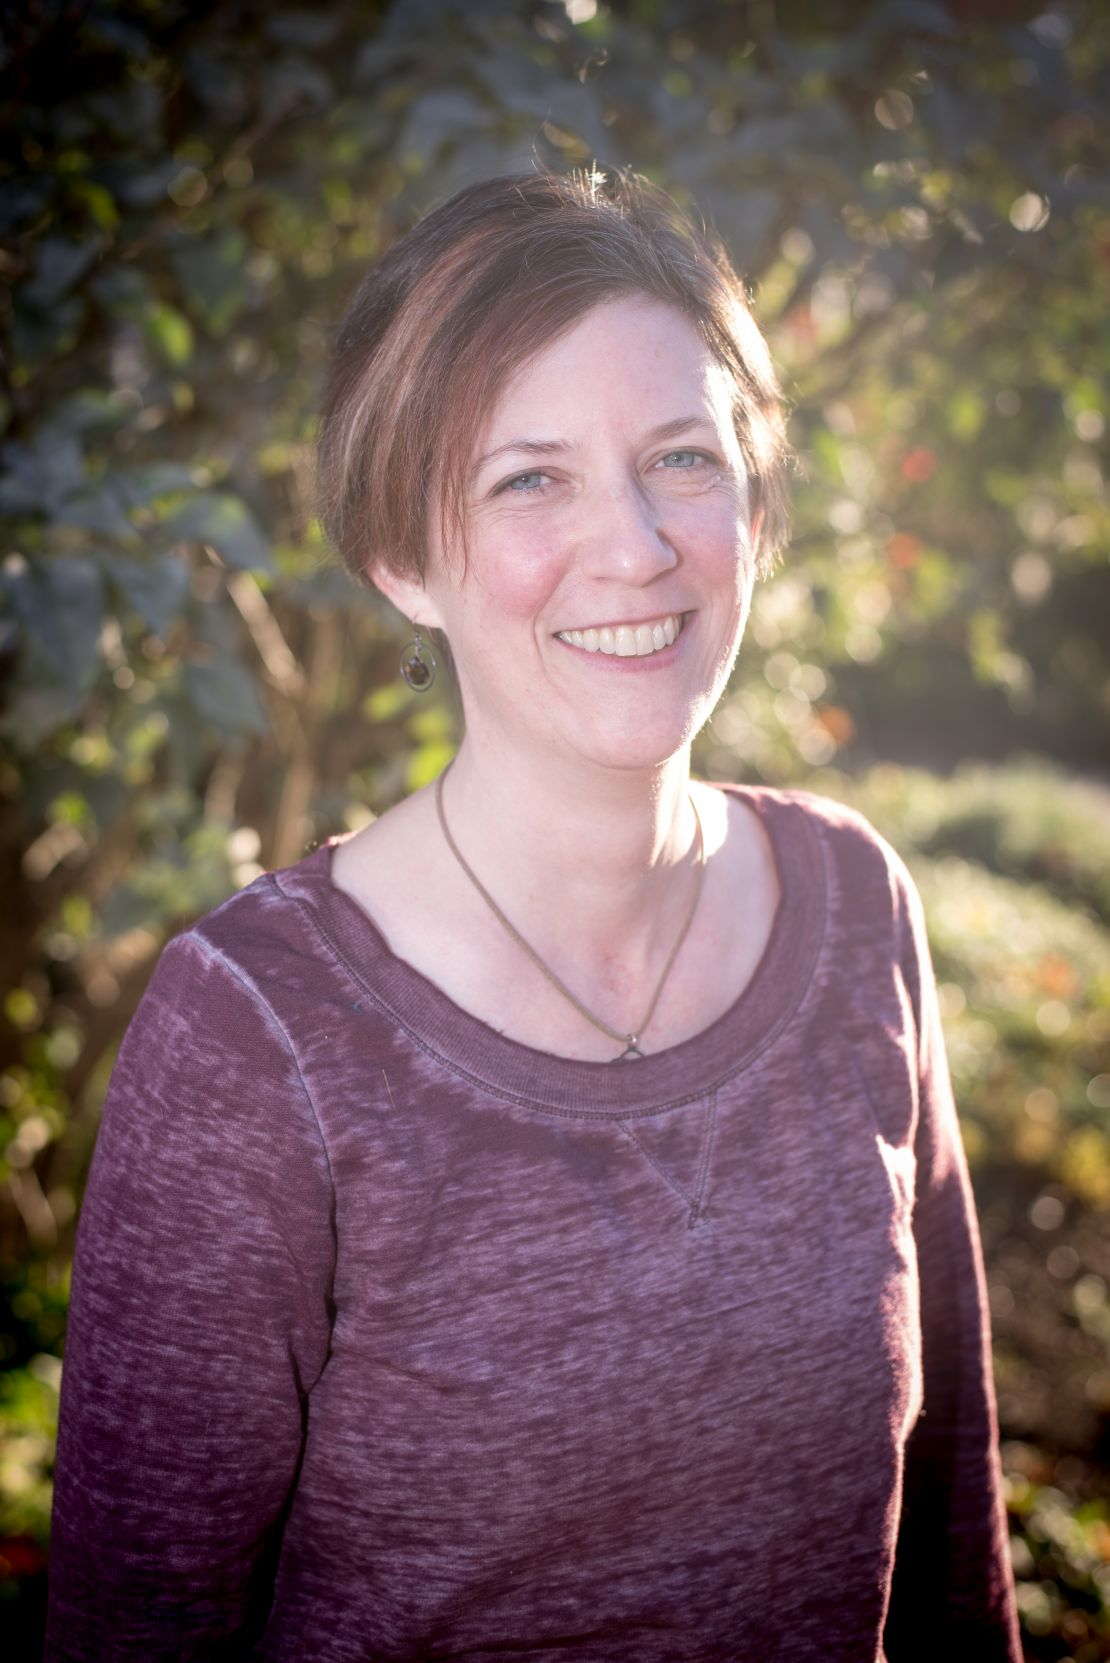 Trudi Dixon, LMT | Massage Therapist | Somatic Synergist | Reiki Practitioner | Somatic Therapist